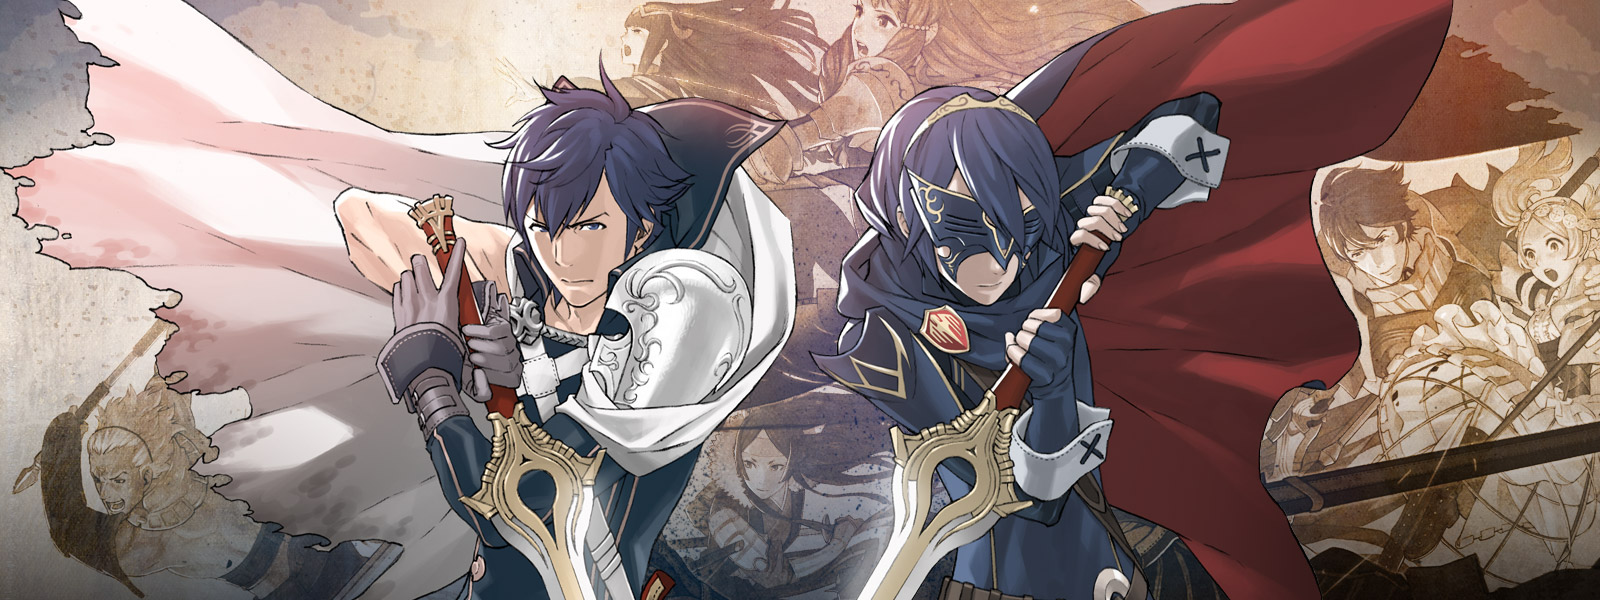 Fire Emblem Awakening shipping delays